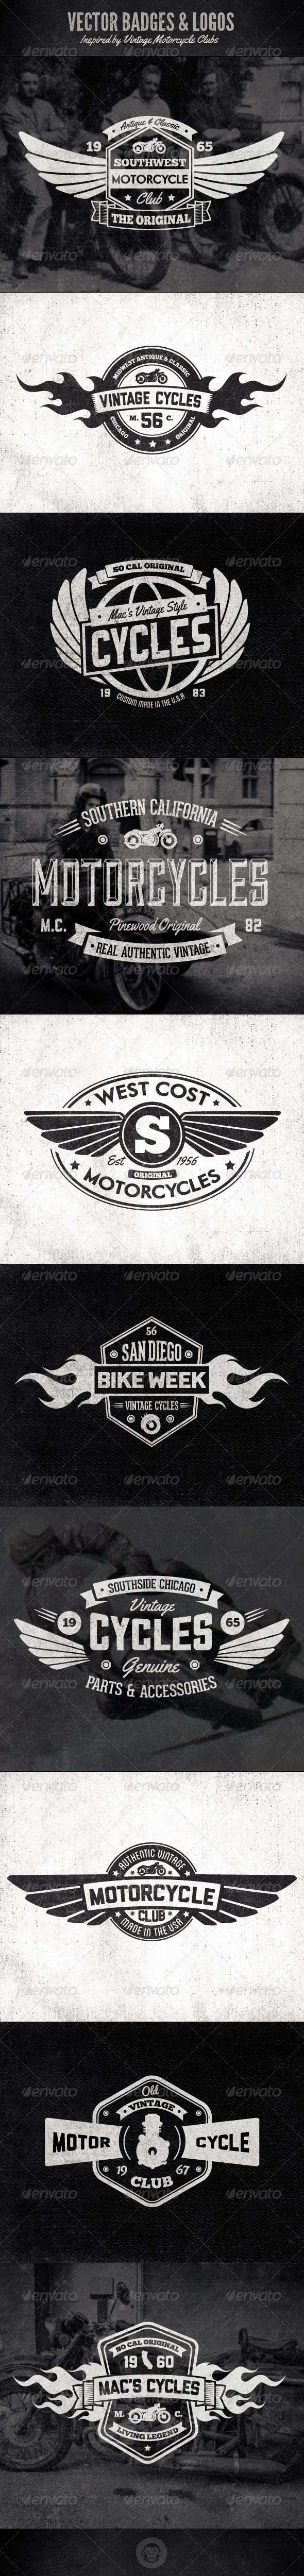 Vintage Badges and Logos - Motorcyle Inspired - Badges & Stickers Web Elements